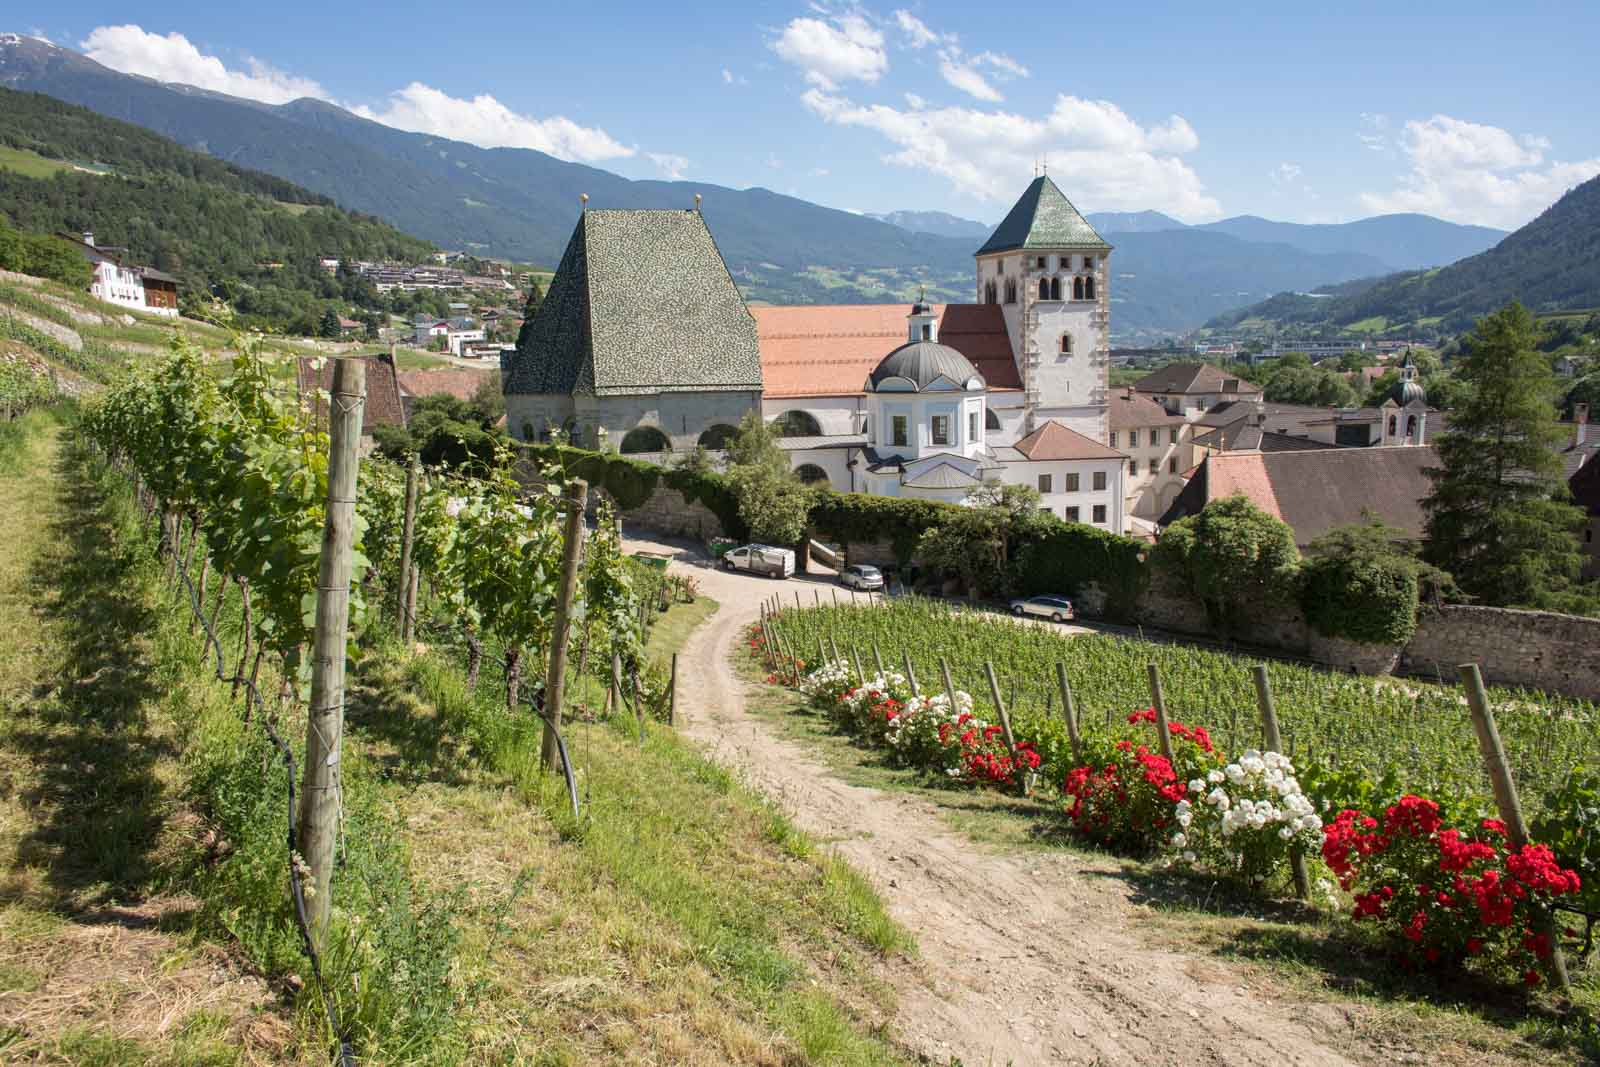 A view over the vineyards and abbey of Abbazia di Novacella near Bressanone, Italy. ©Kevin Day/Opening a Bottle